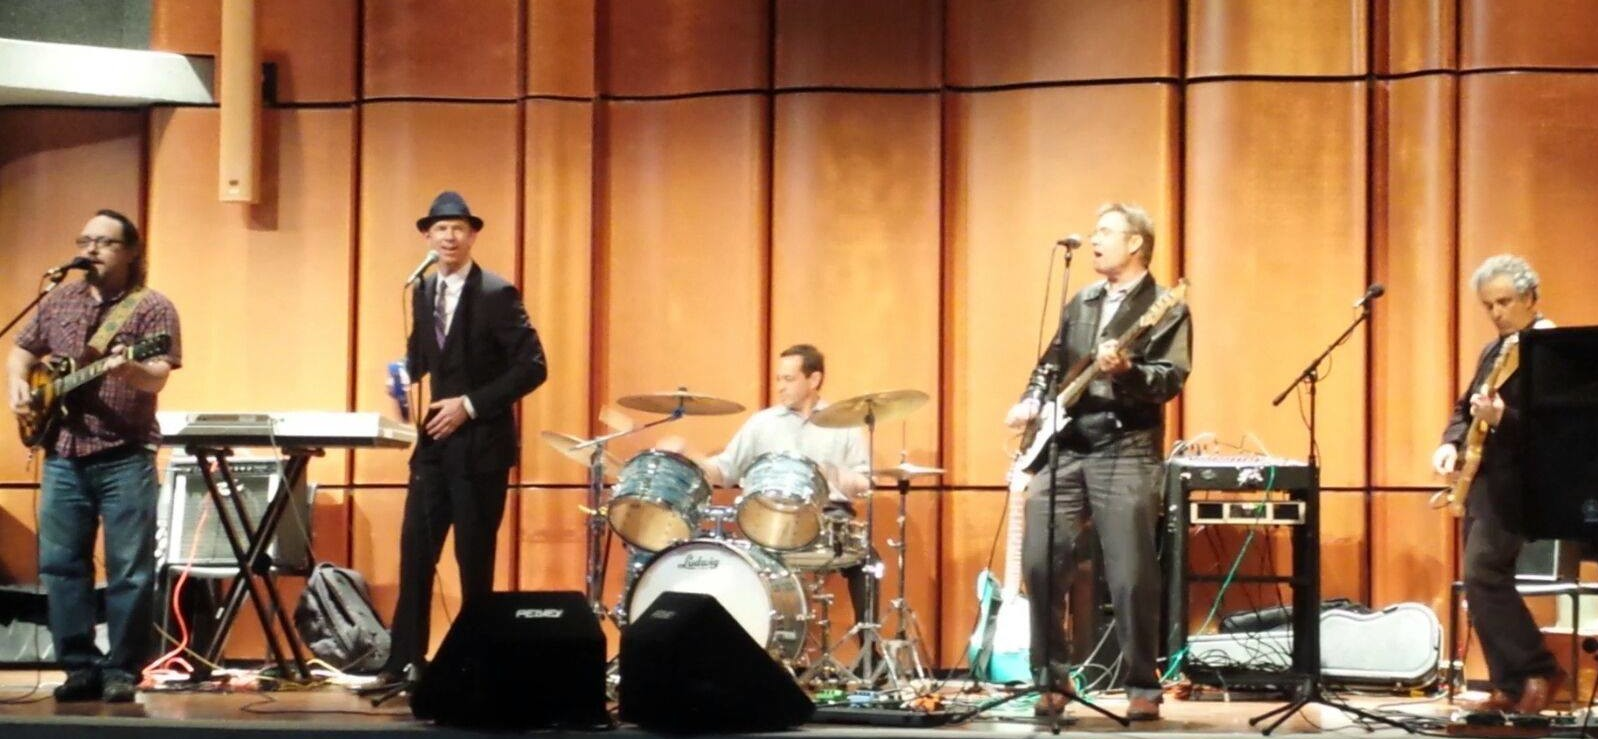 The Innocent Bystanders - Central Library San Diego - April 2014